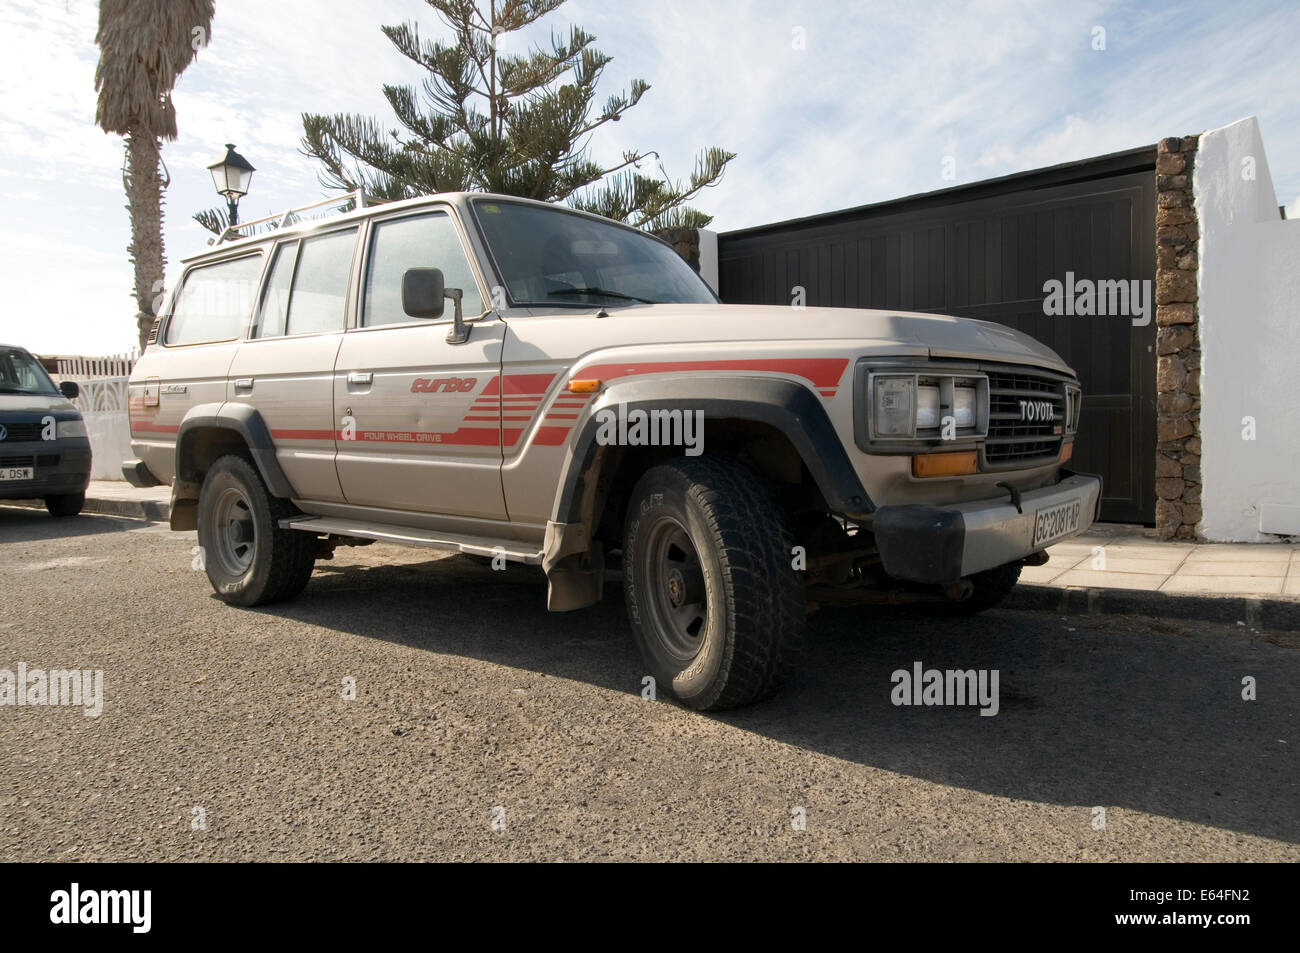 toyota land cruiser 4 by four 4x4 japanese off road car suv suvs stock photo royalty free image. Black Bedroom Furniture Sets. Home Design Ideas